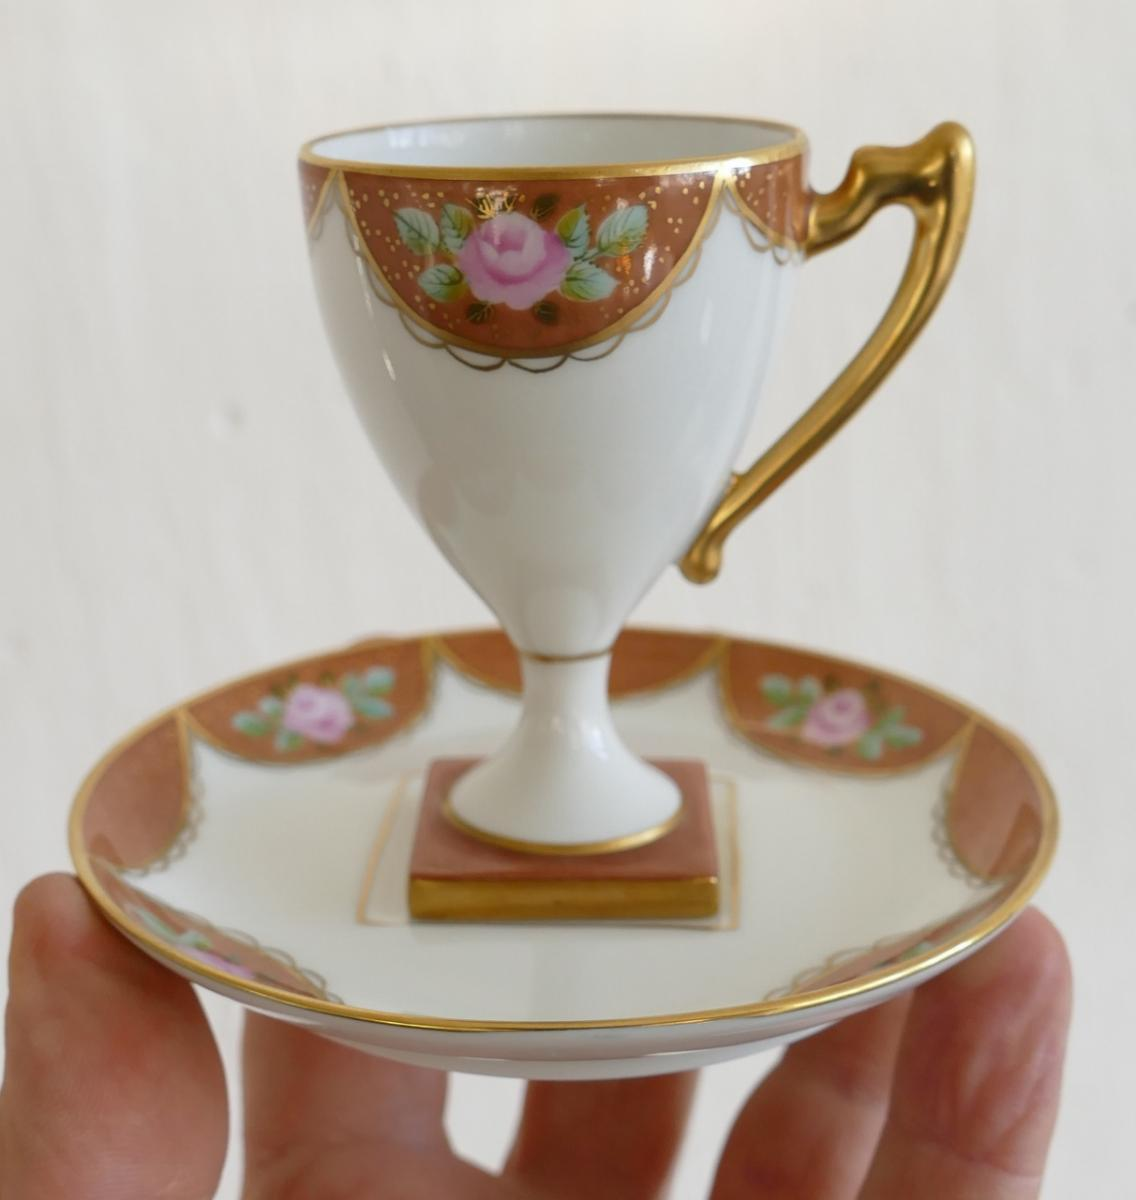 Porcelain Collection Cup Handpainted, Flowers And Gold Decor